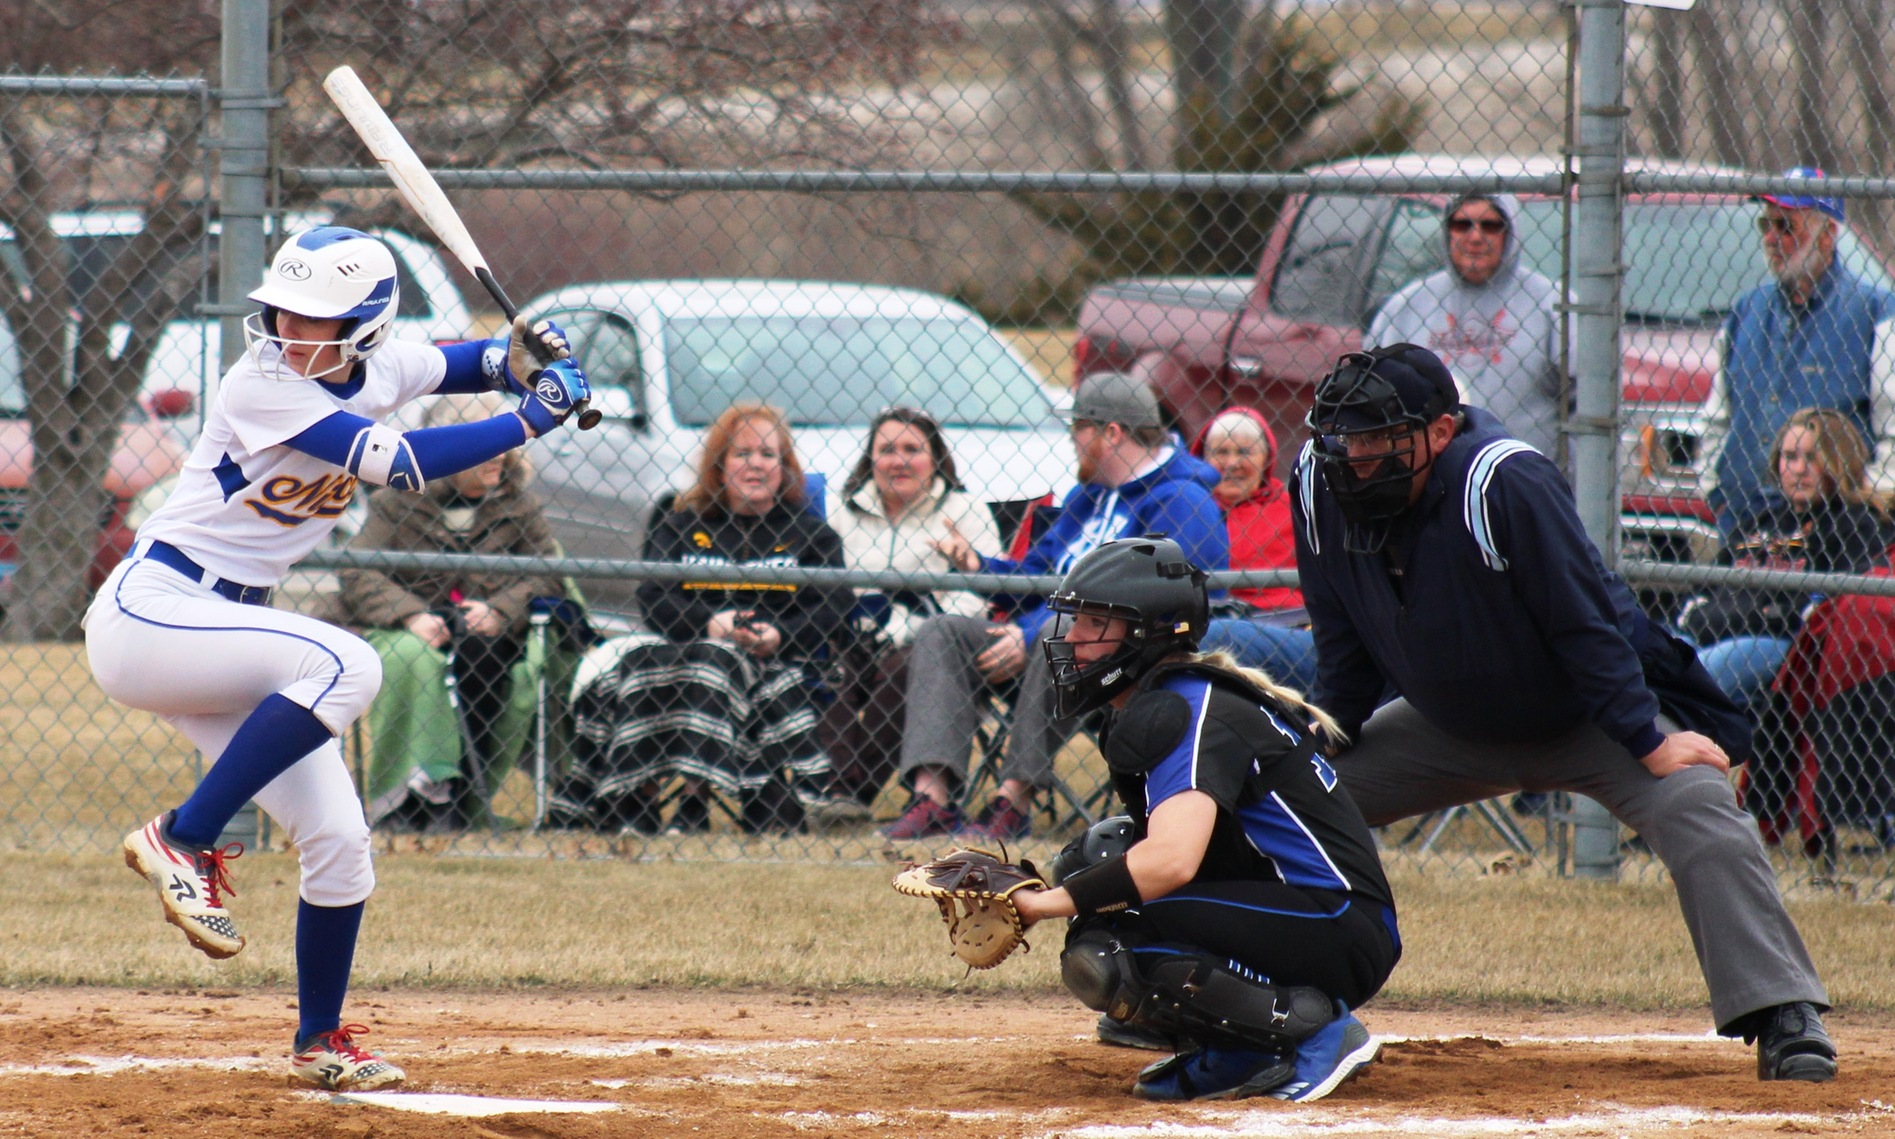 Hannah Faktor gets ready to bat in a game last week against Kirkwood.